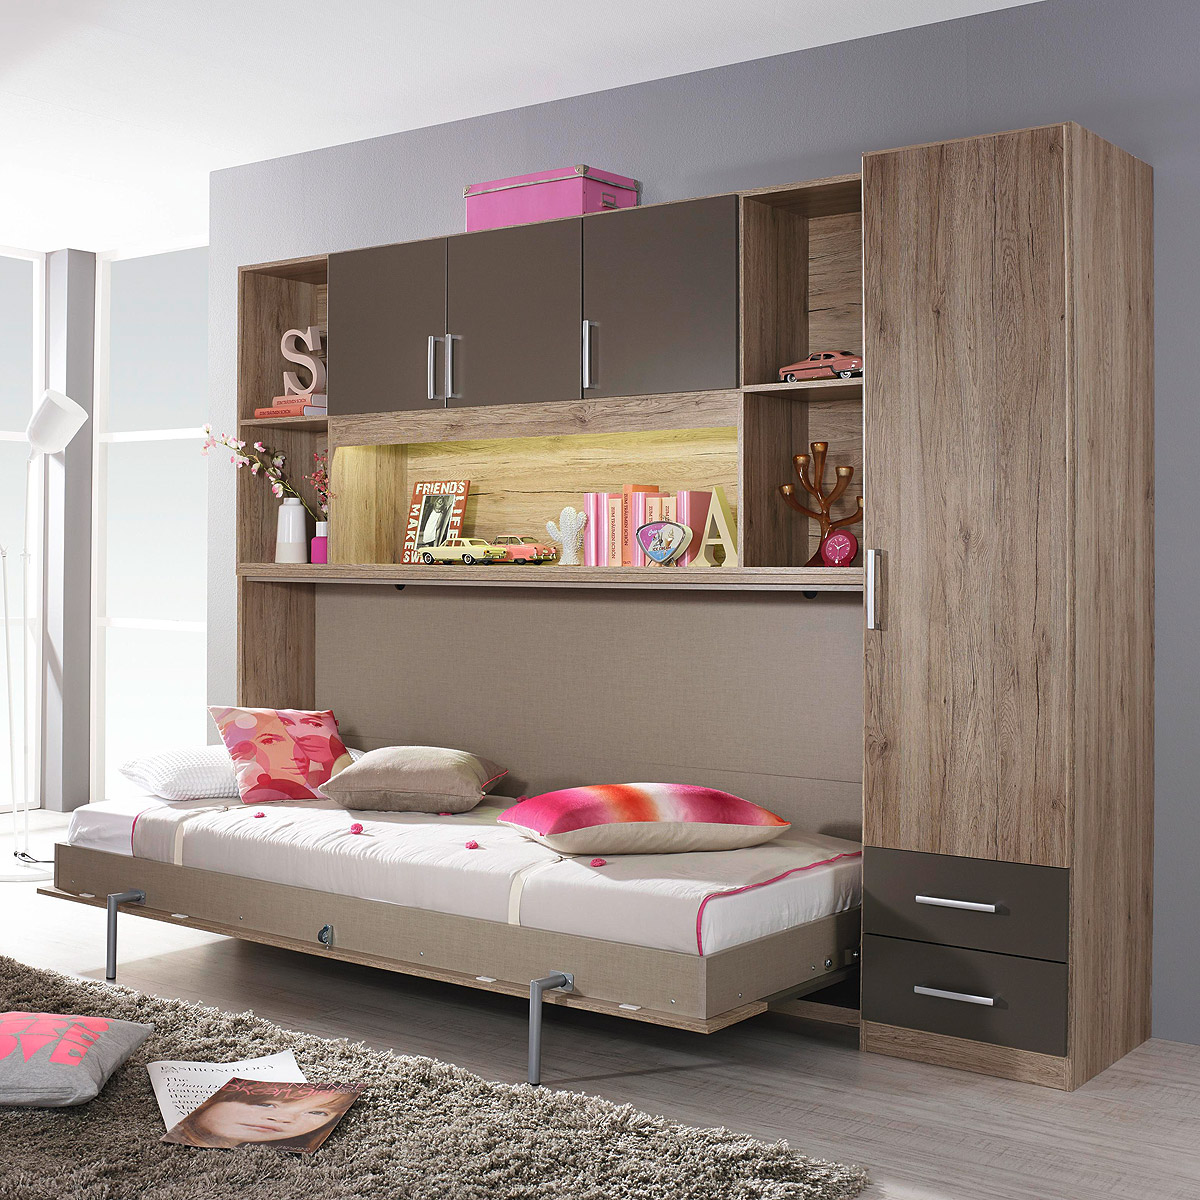 klappbett set albero bett regal kleiderschrank eiche. Black Bedroom Furniture Sets. Home Design Ideas